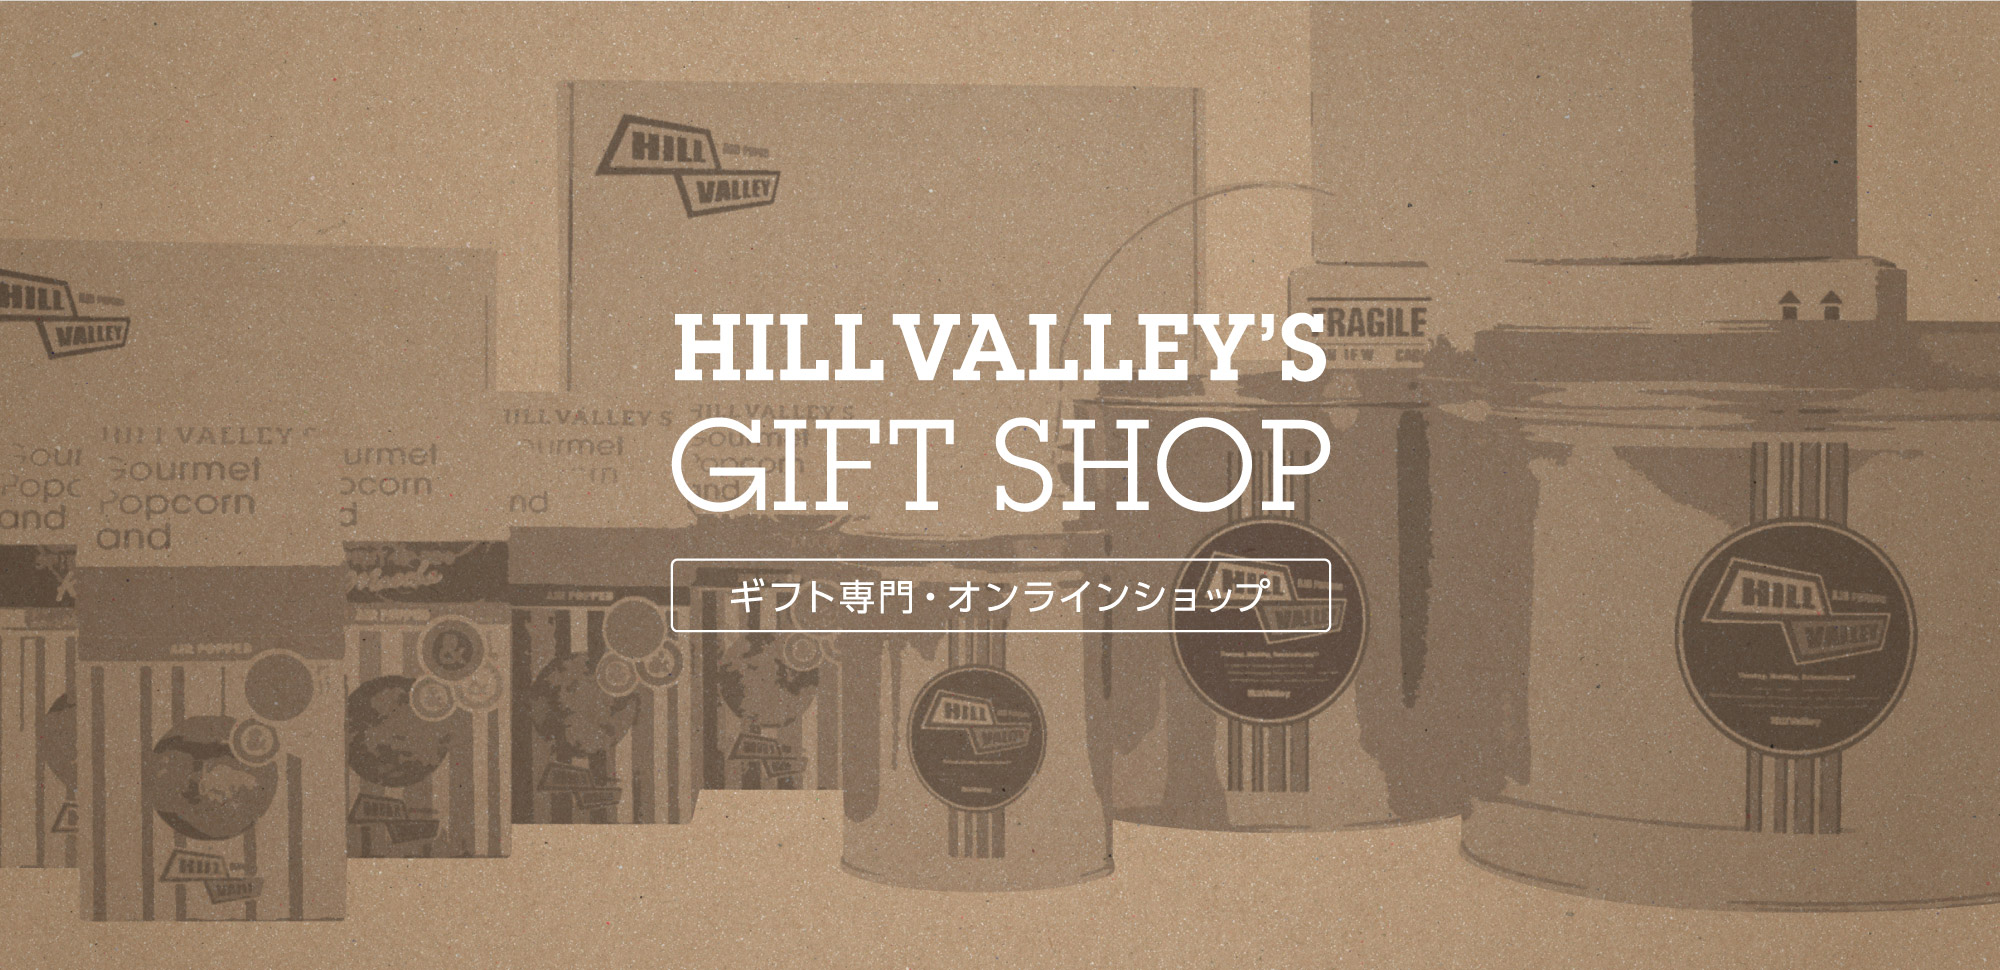 HillValley's Gift Shop ギフト専門・オンラインショップ